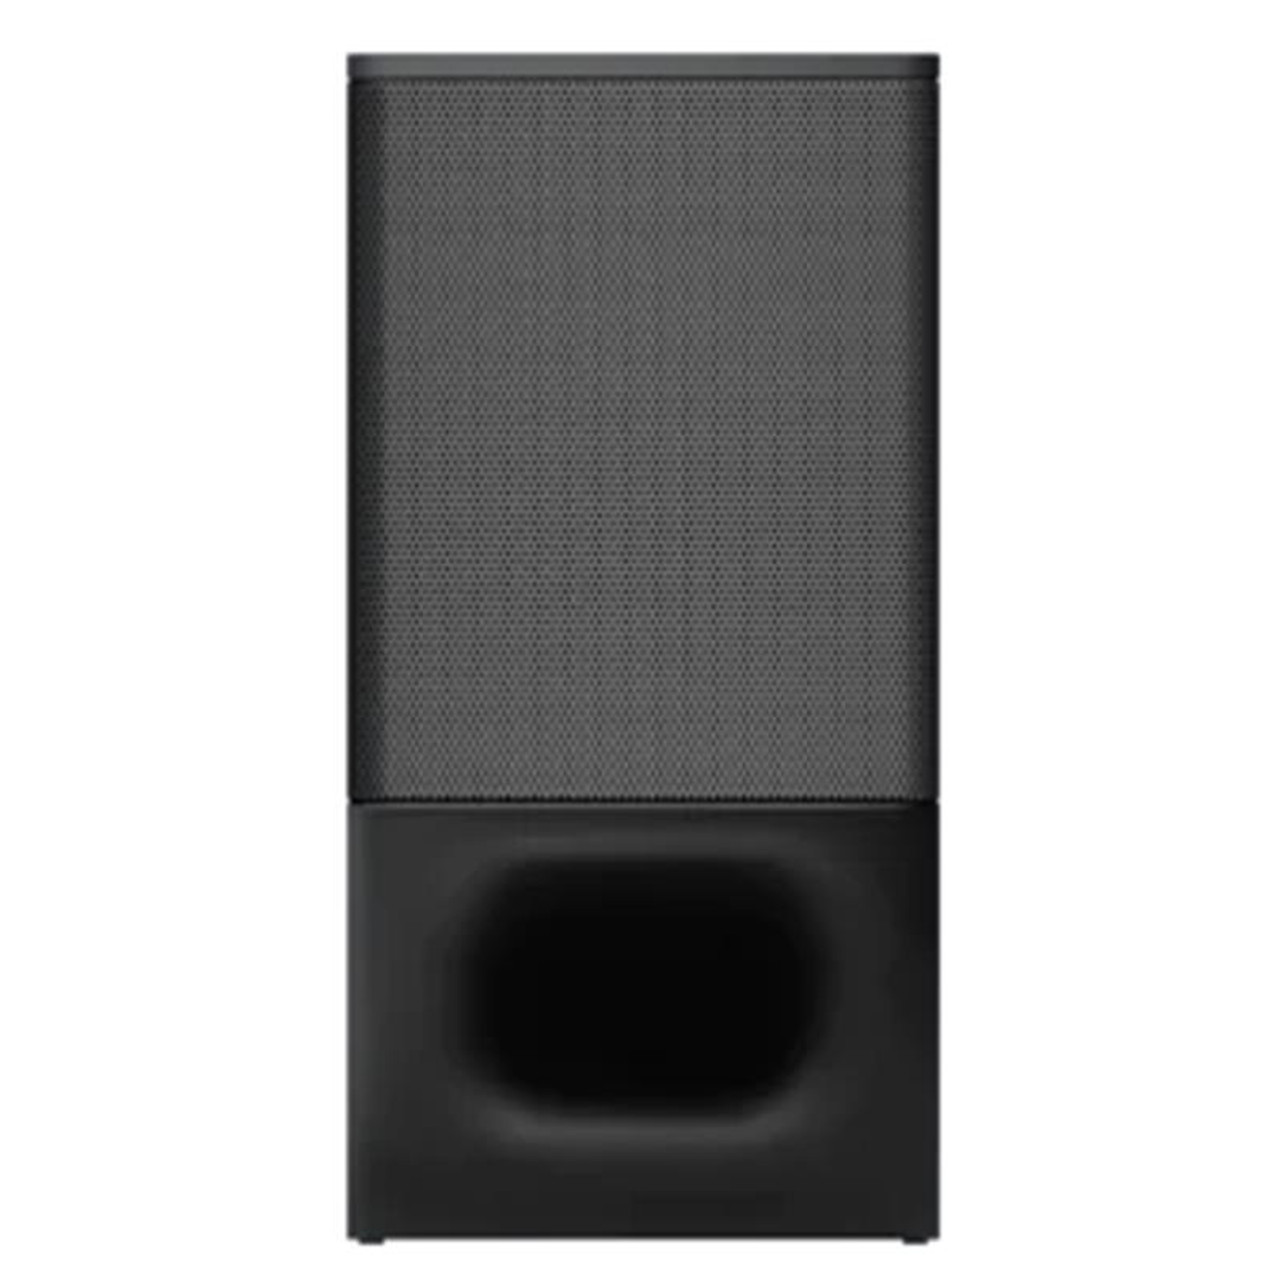 Sony HT-S350 2.1CH 320W Surround Sound Bluetooth Soundbar and Wireless Subwoofer